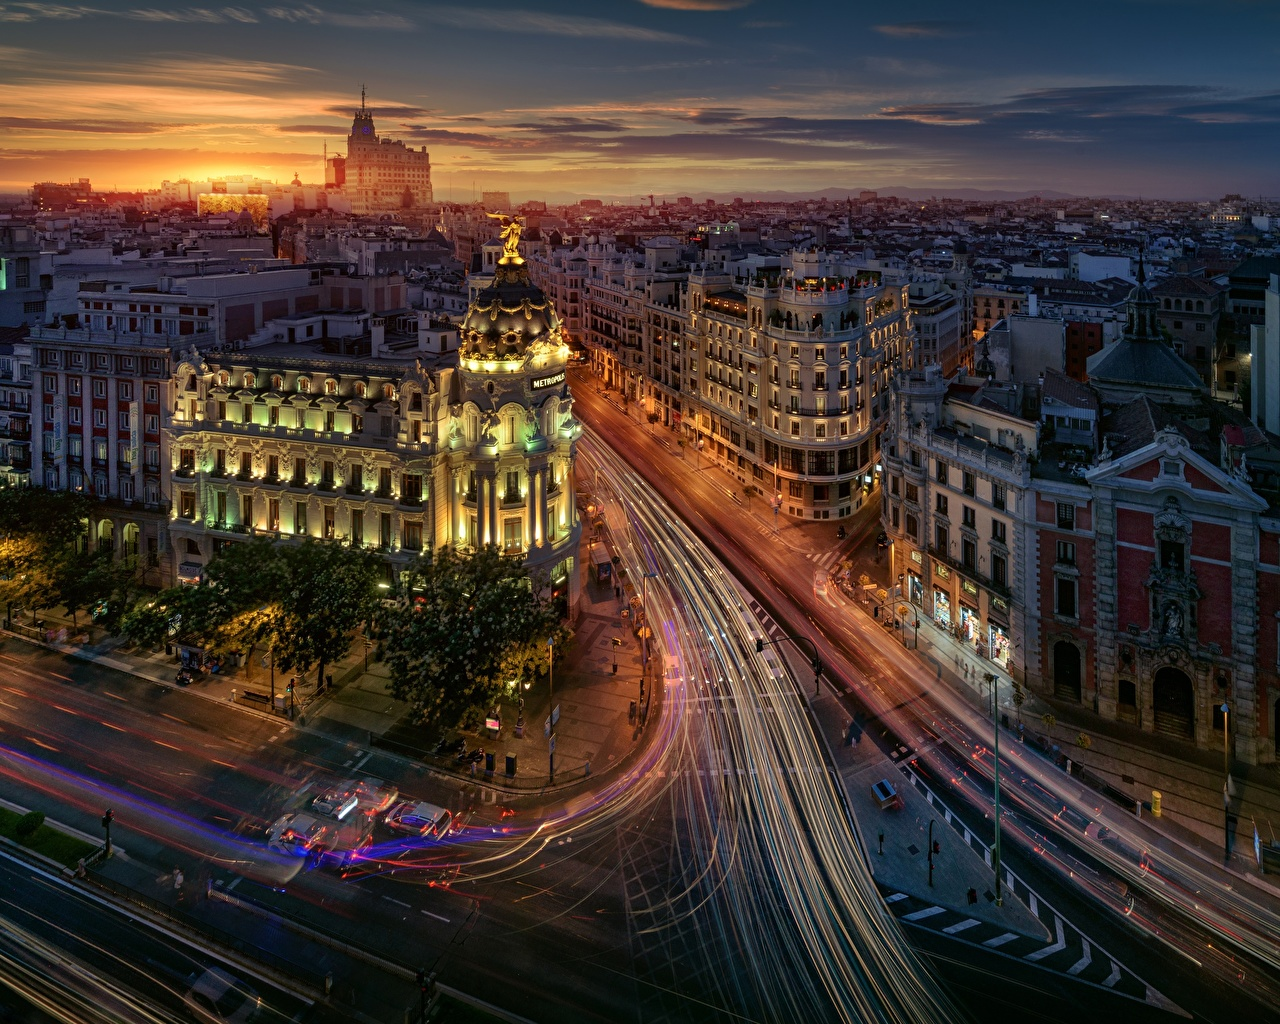 Pictures Madrid Spain Roads Street Motion Evening From above Houses Cities moving riding driving at speed Building